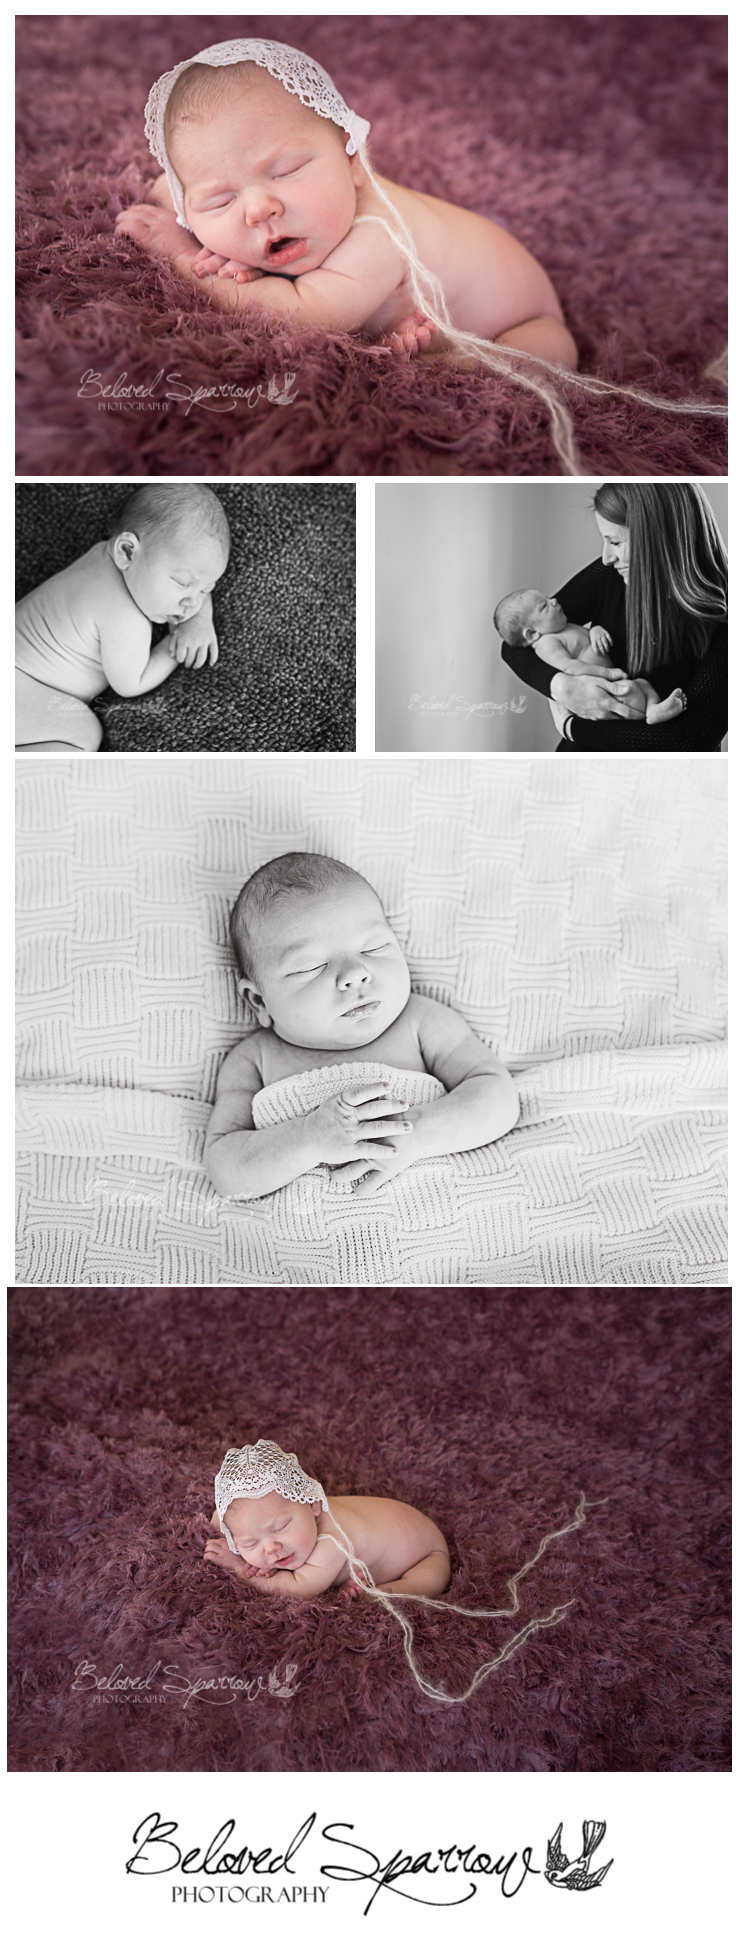 Johns Creek Newborn Photographer